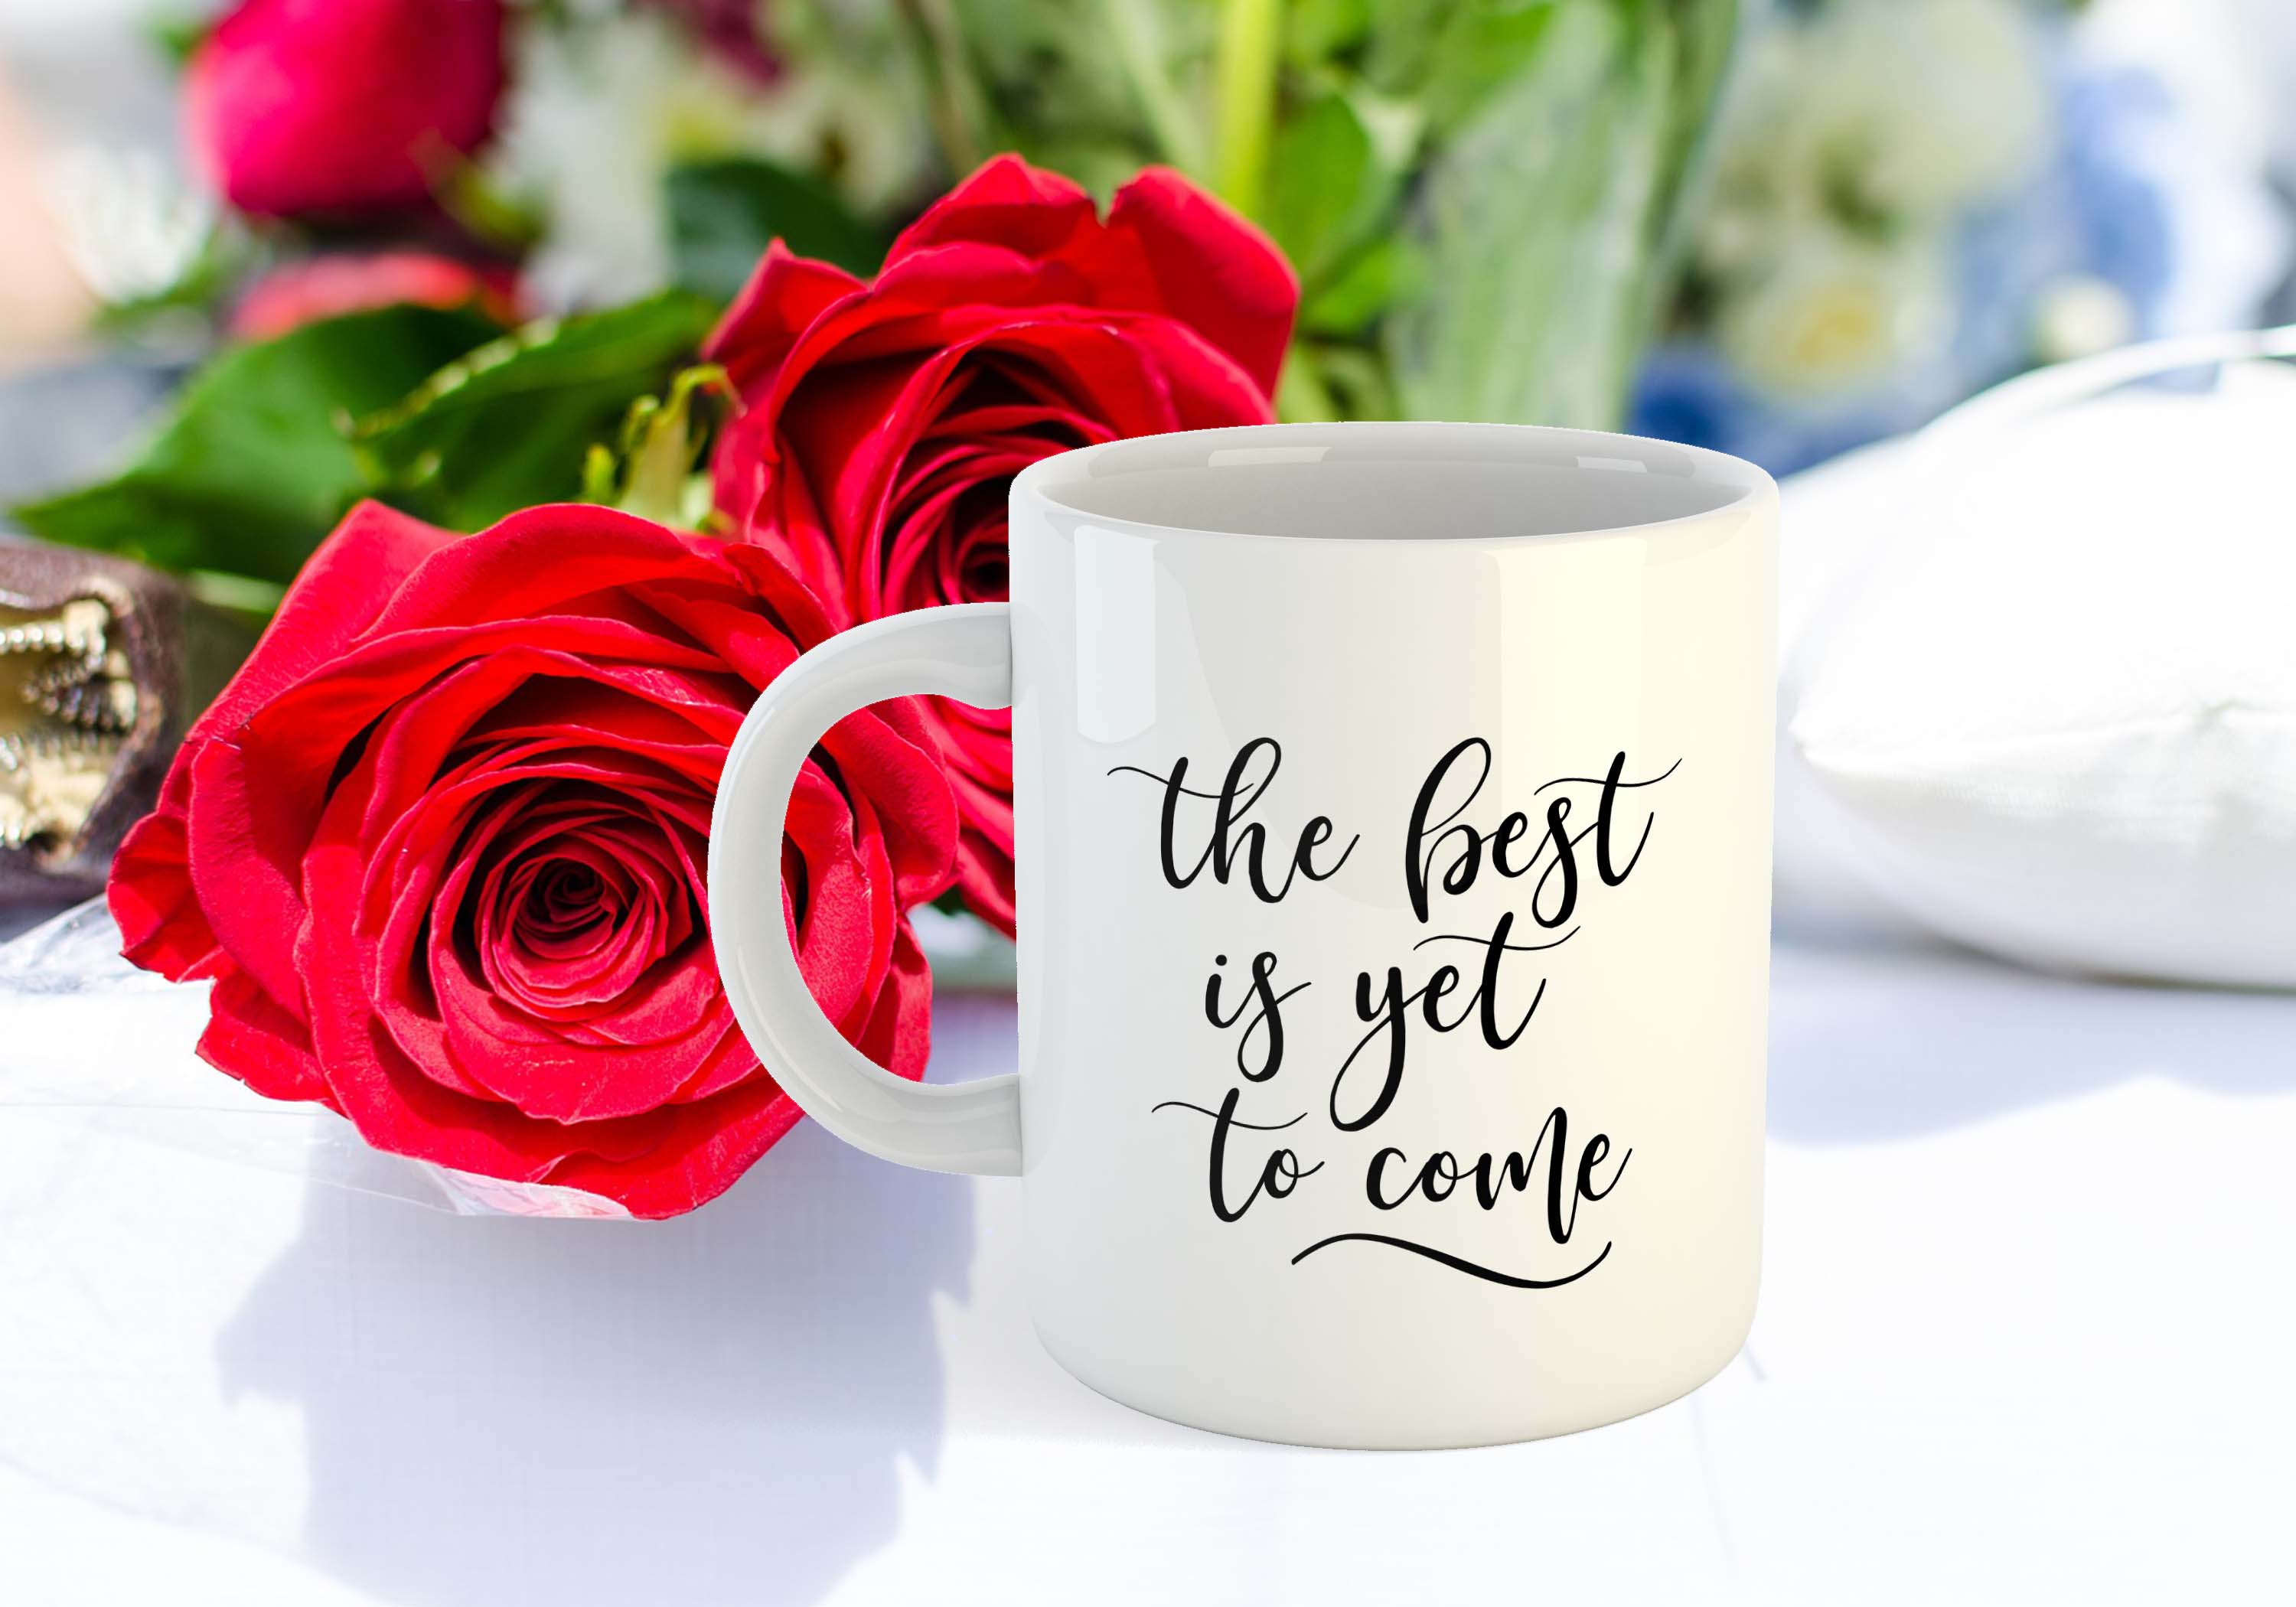 The best is yet to come SVG PNG EPS DXF Inspirational quote SVG Motivational sayings example image 2